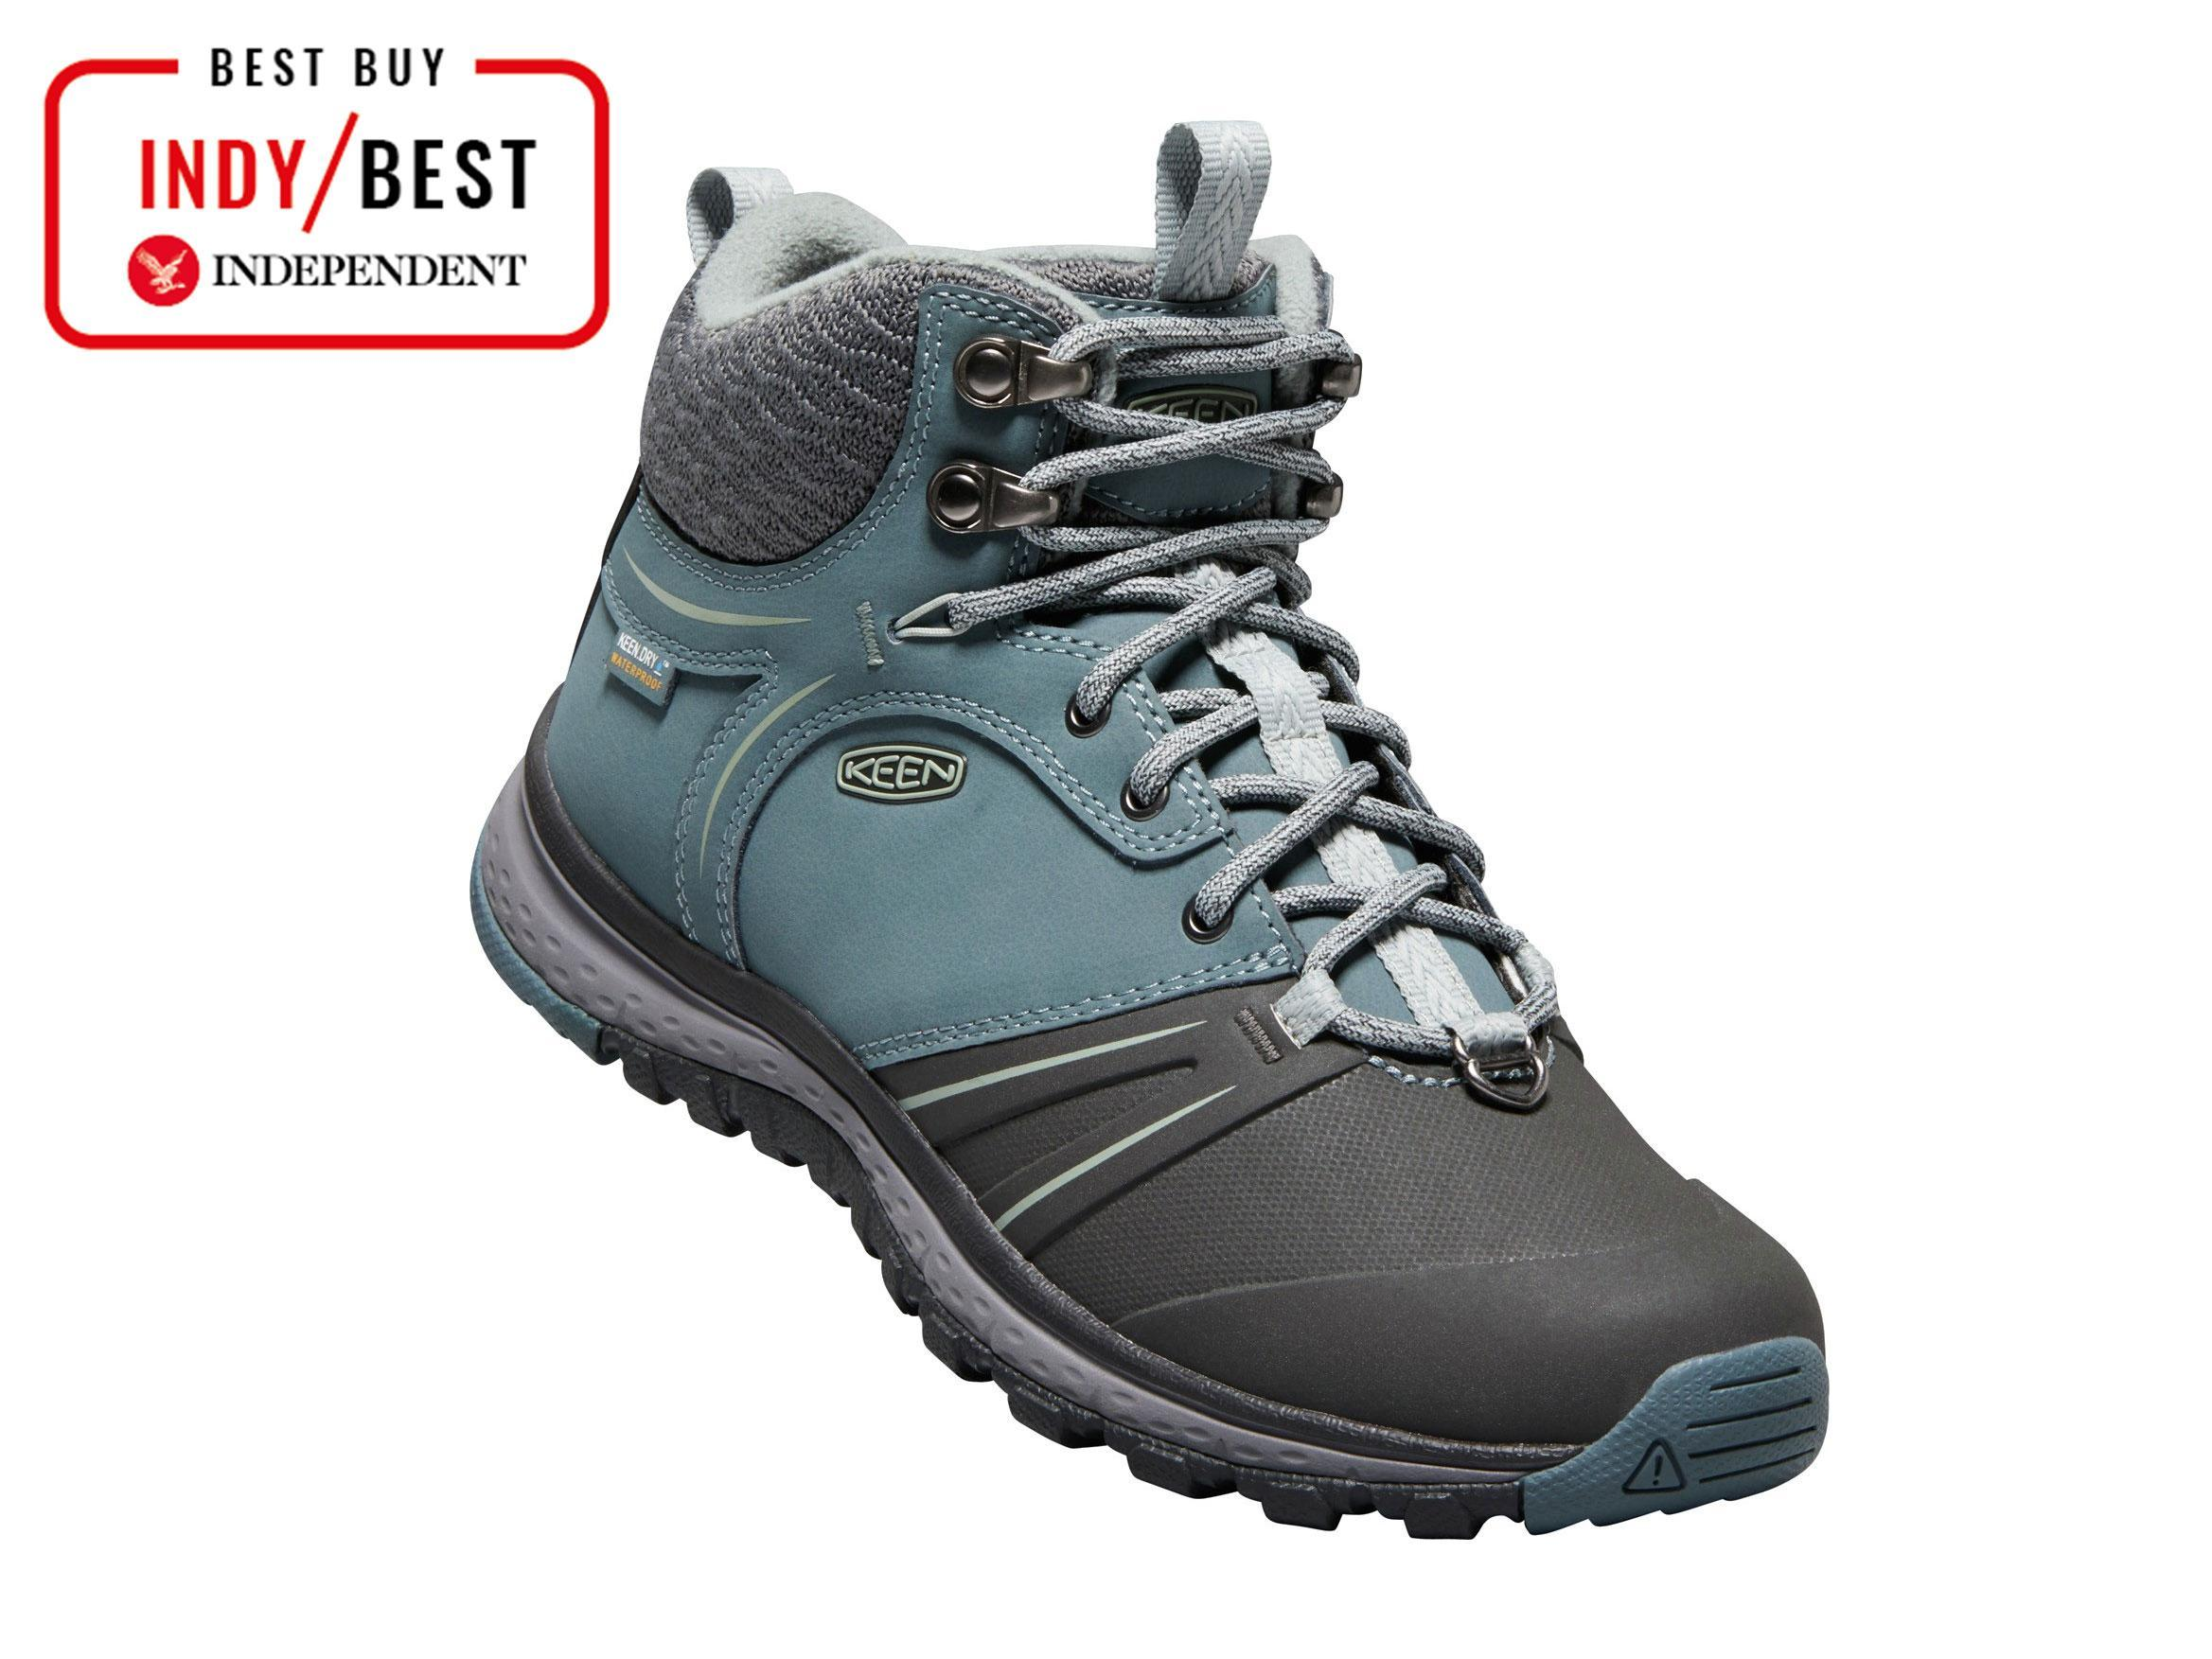 b81c30c8 10 best snow boots | The Independent